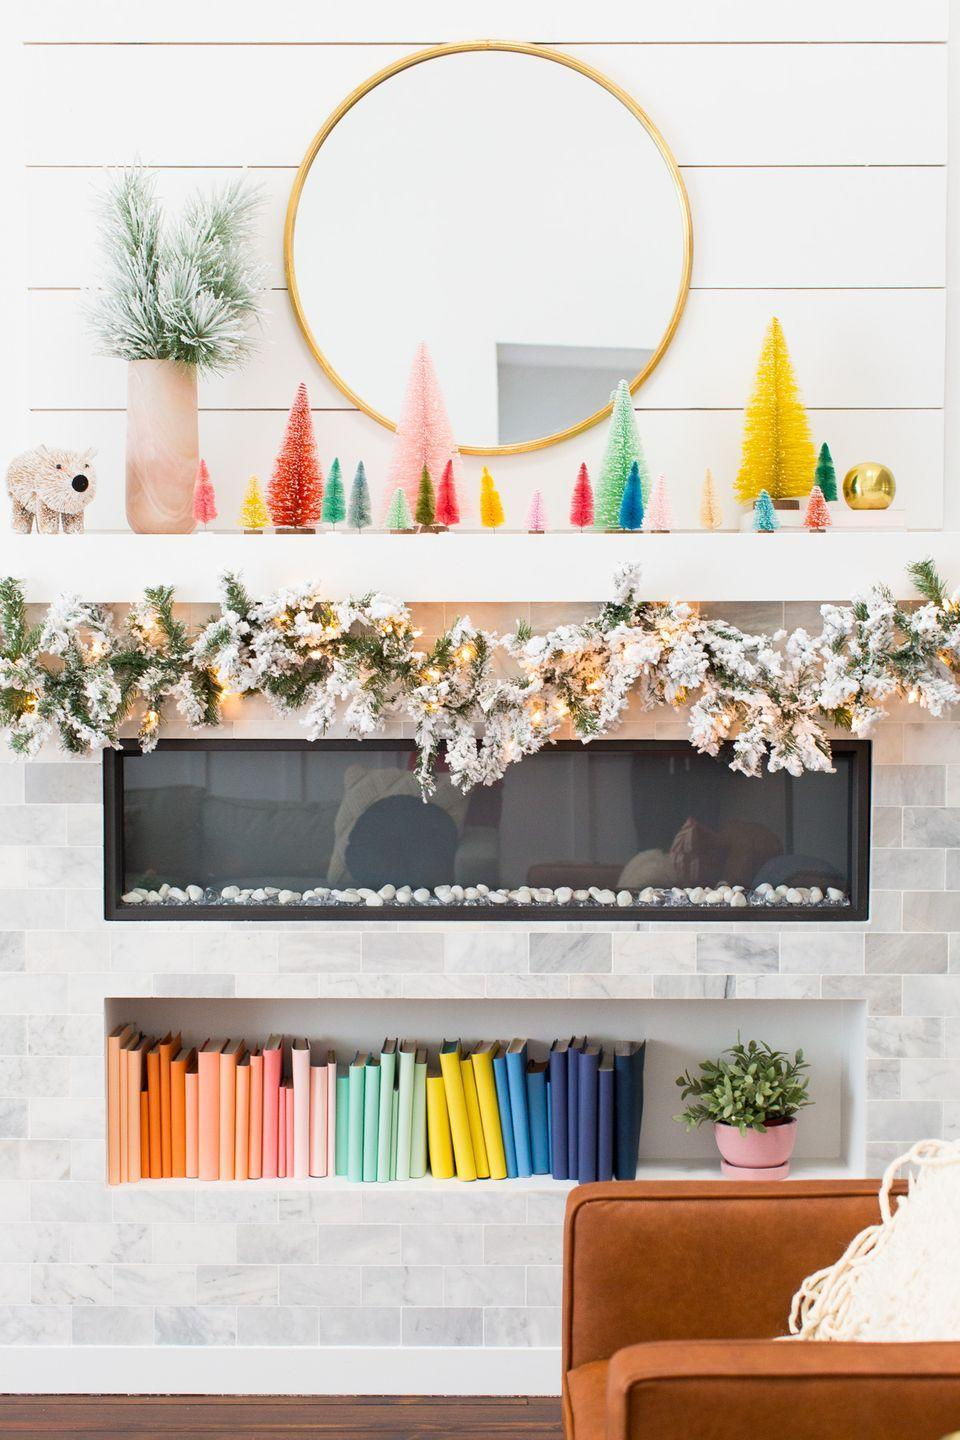 "<p>Embrace it—pastels are happening for Christmas.</p><p>See more at <a href=""https://sugarandcloth.com/how-we-decorated-our-home-for-christmas/"" rel=""nofollow noopener"" target=""_blank"" data-ylk=""slk:Sugar & Cloth"" class=""link rapid-noclick-resp"">Sugar & Cloth</a>. </p>"